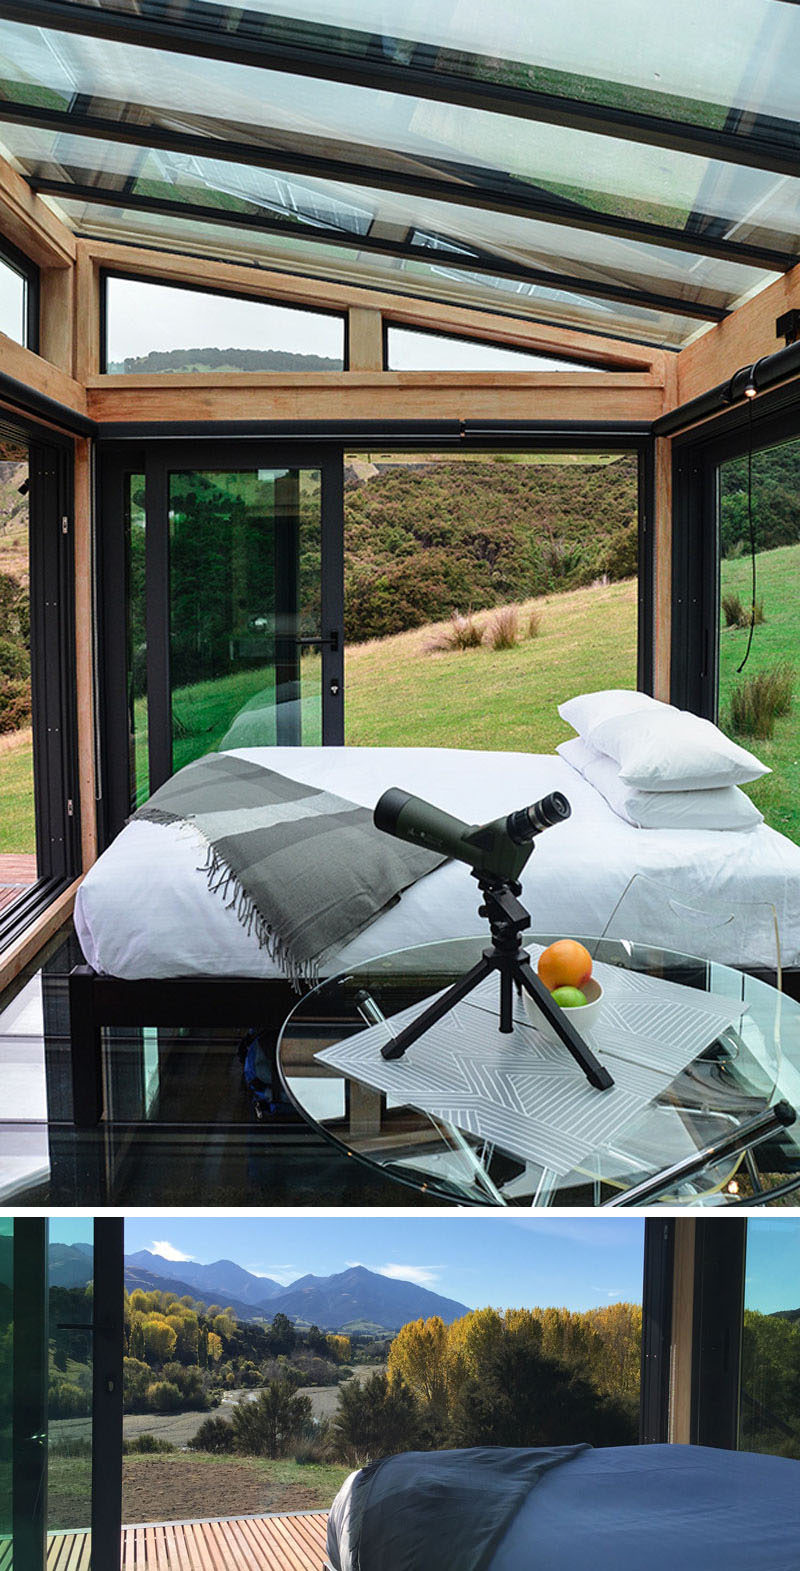 You can hike to and stay in a secluded glass hotel room in the middle of a valley in New Zealand.